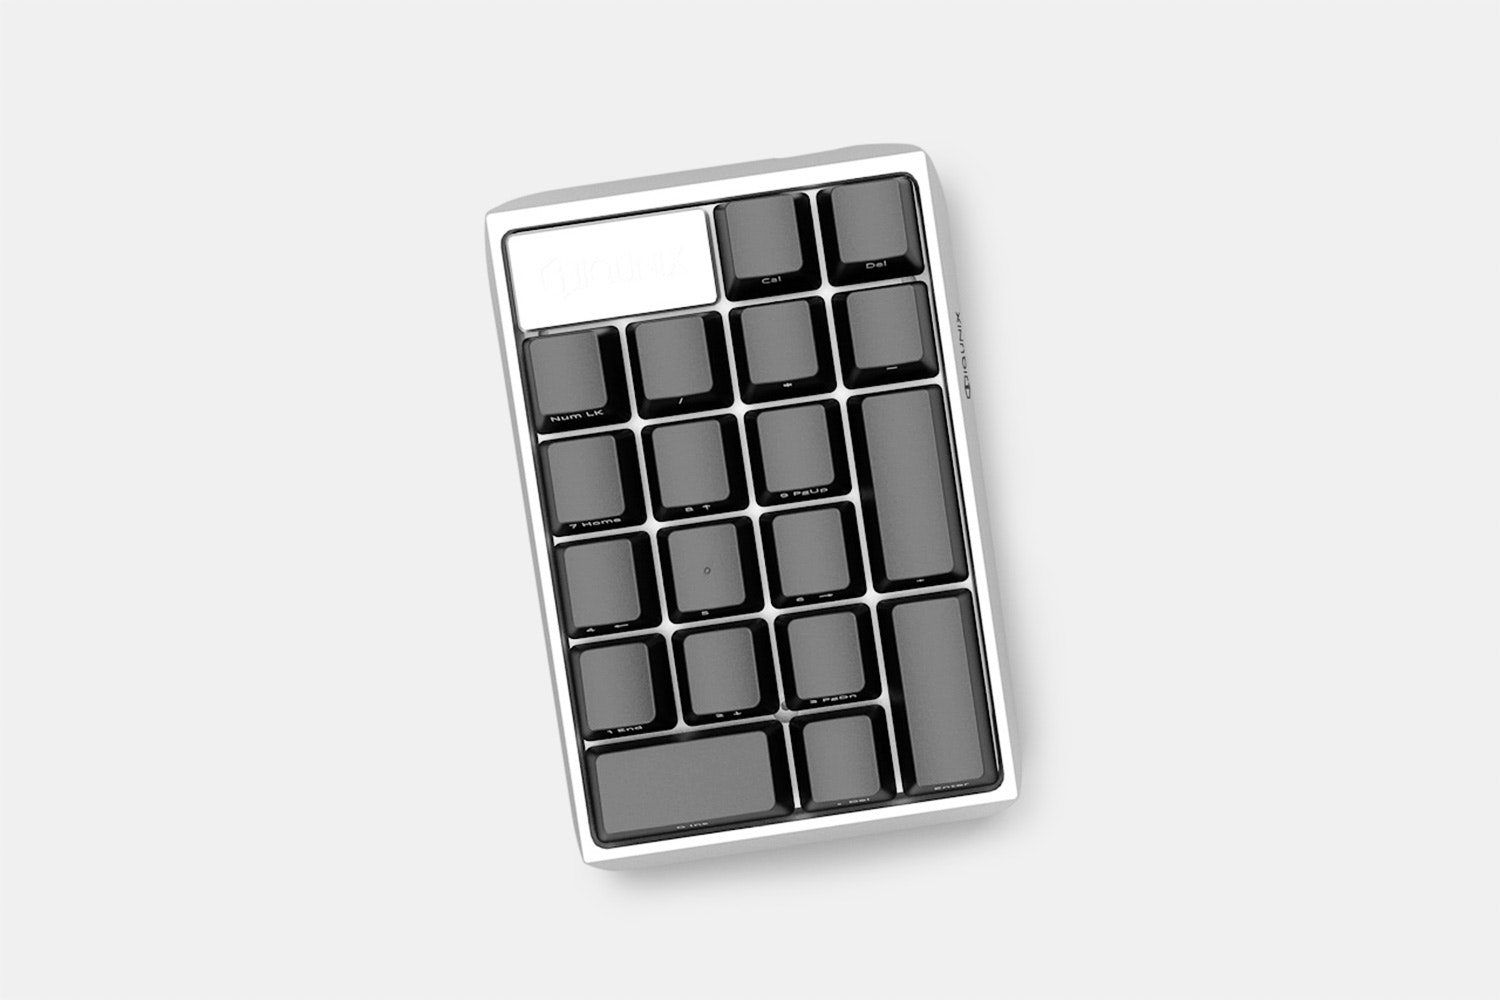 IQKB Bluetooth Mechanical Numpad DIY Kit